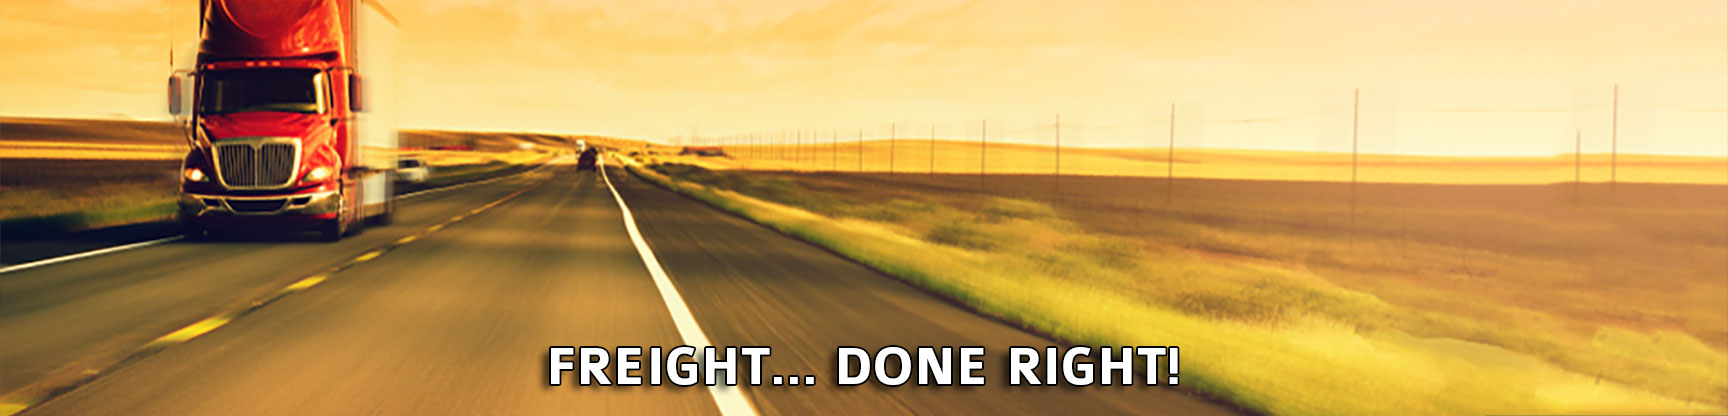 Freight… Done Right